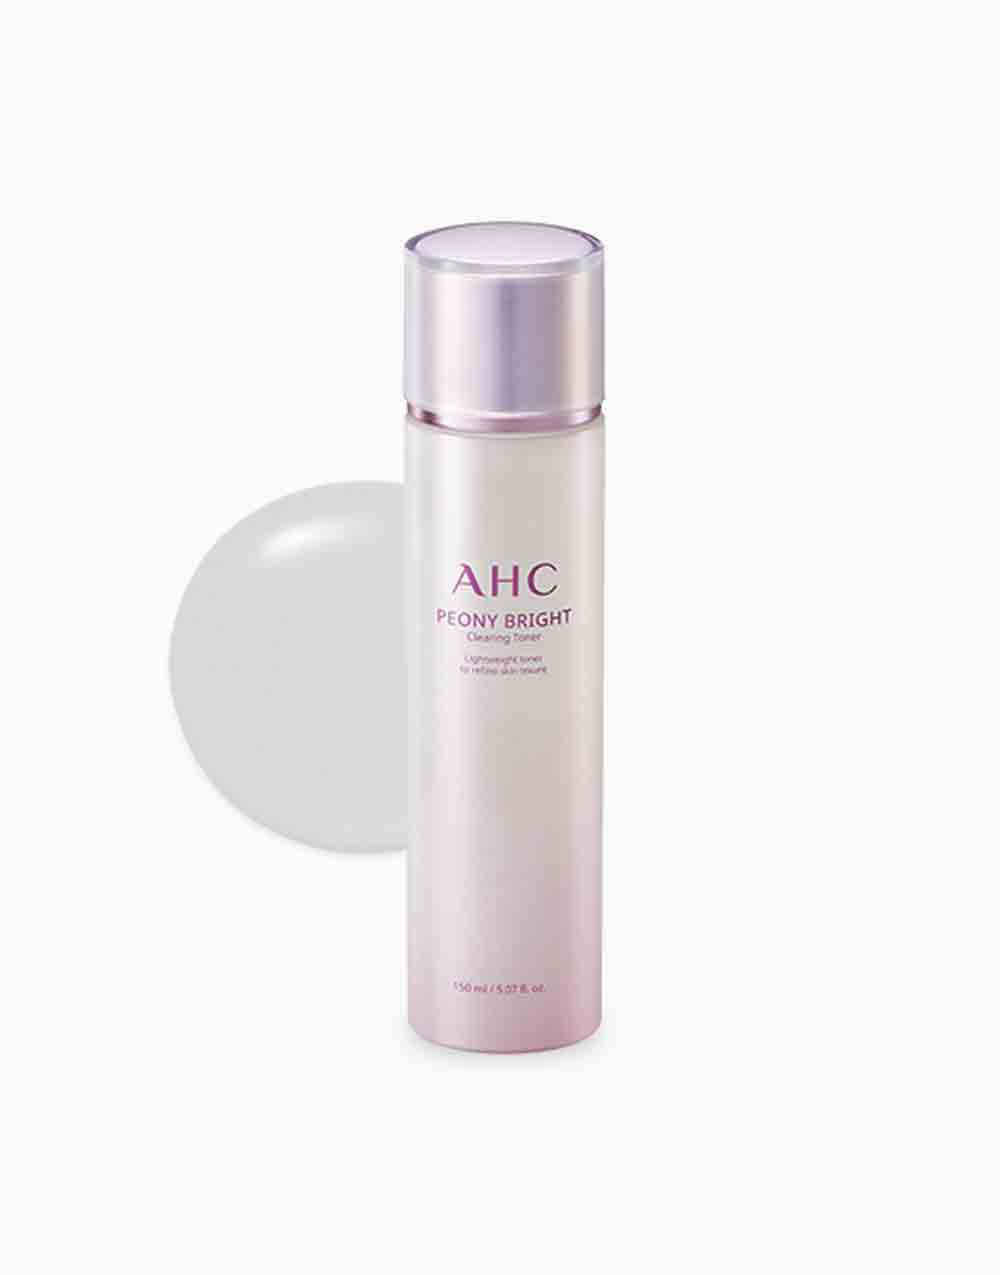 Peony Bright Clearing Toner (150ml) by AHC